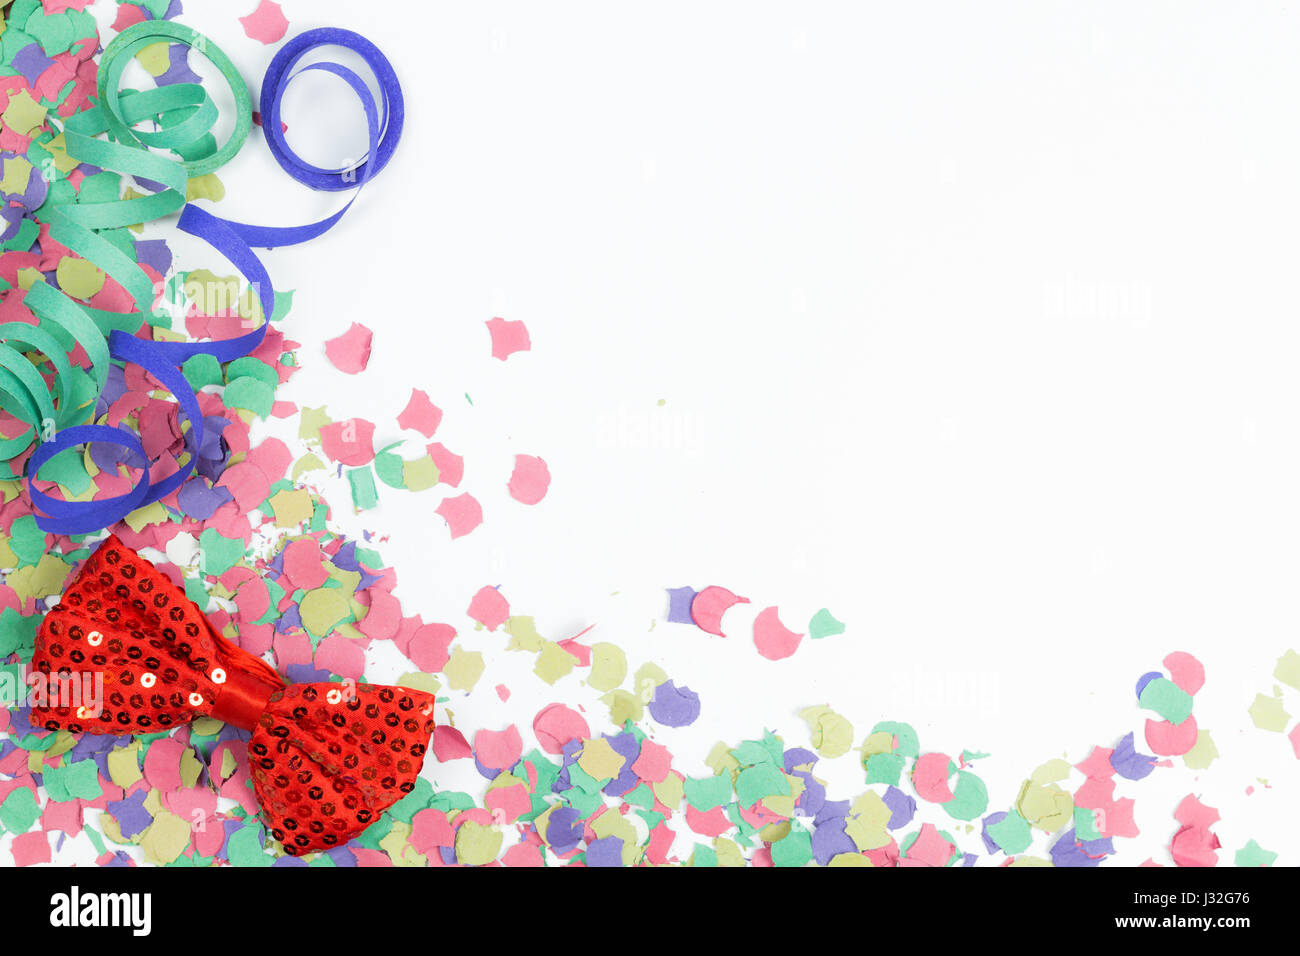 confetti, streamers and red bow on white background - Stock Image